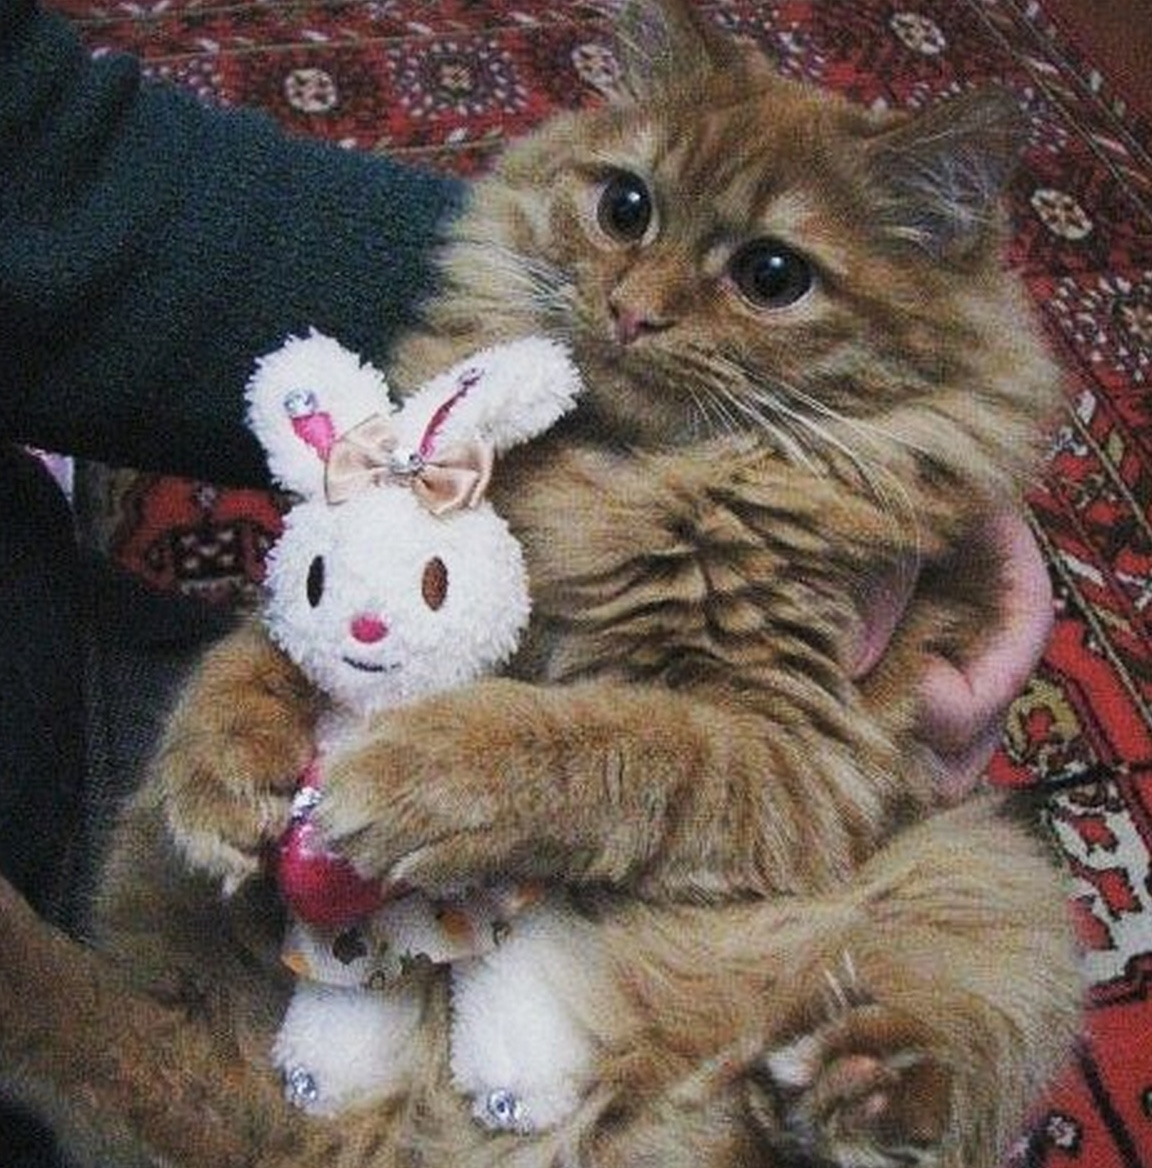 Do you like my new bunny?